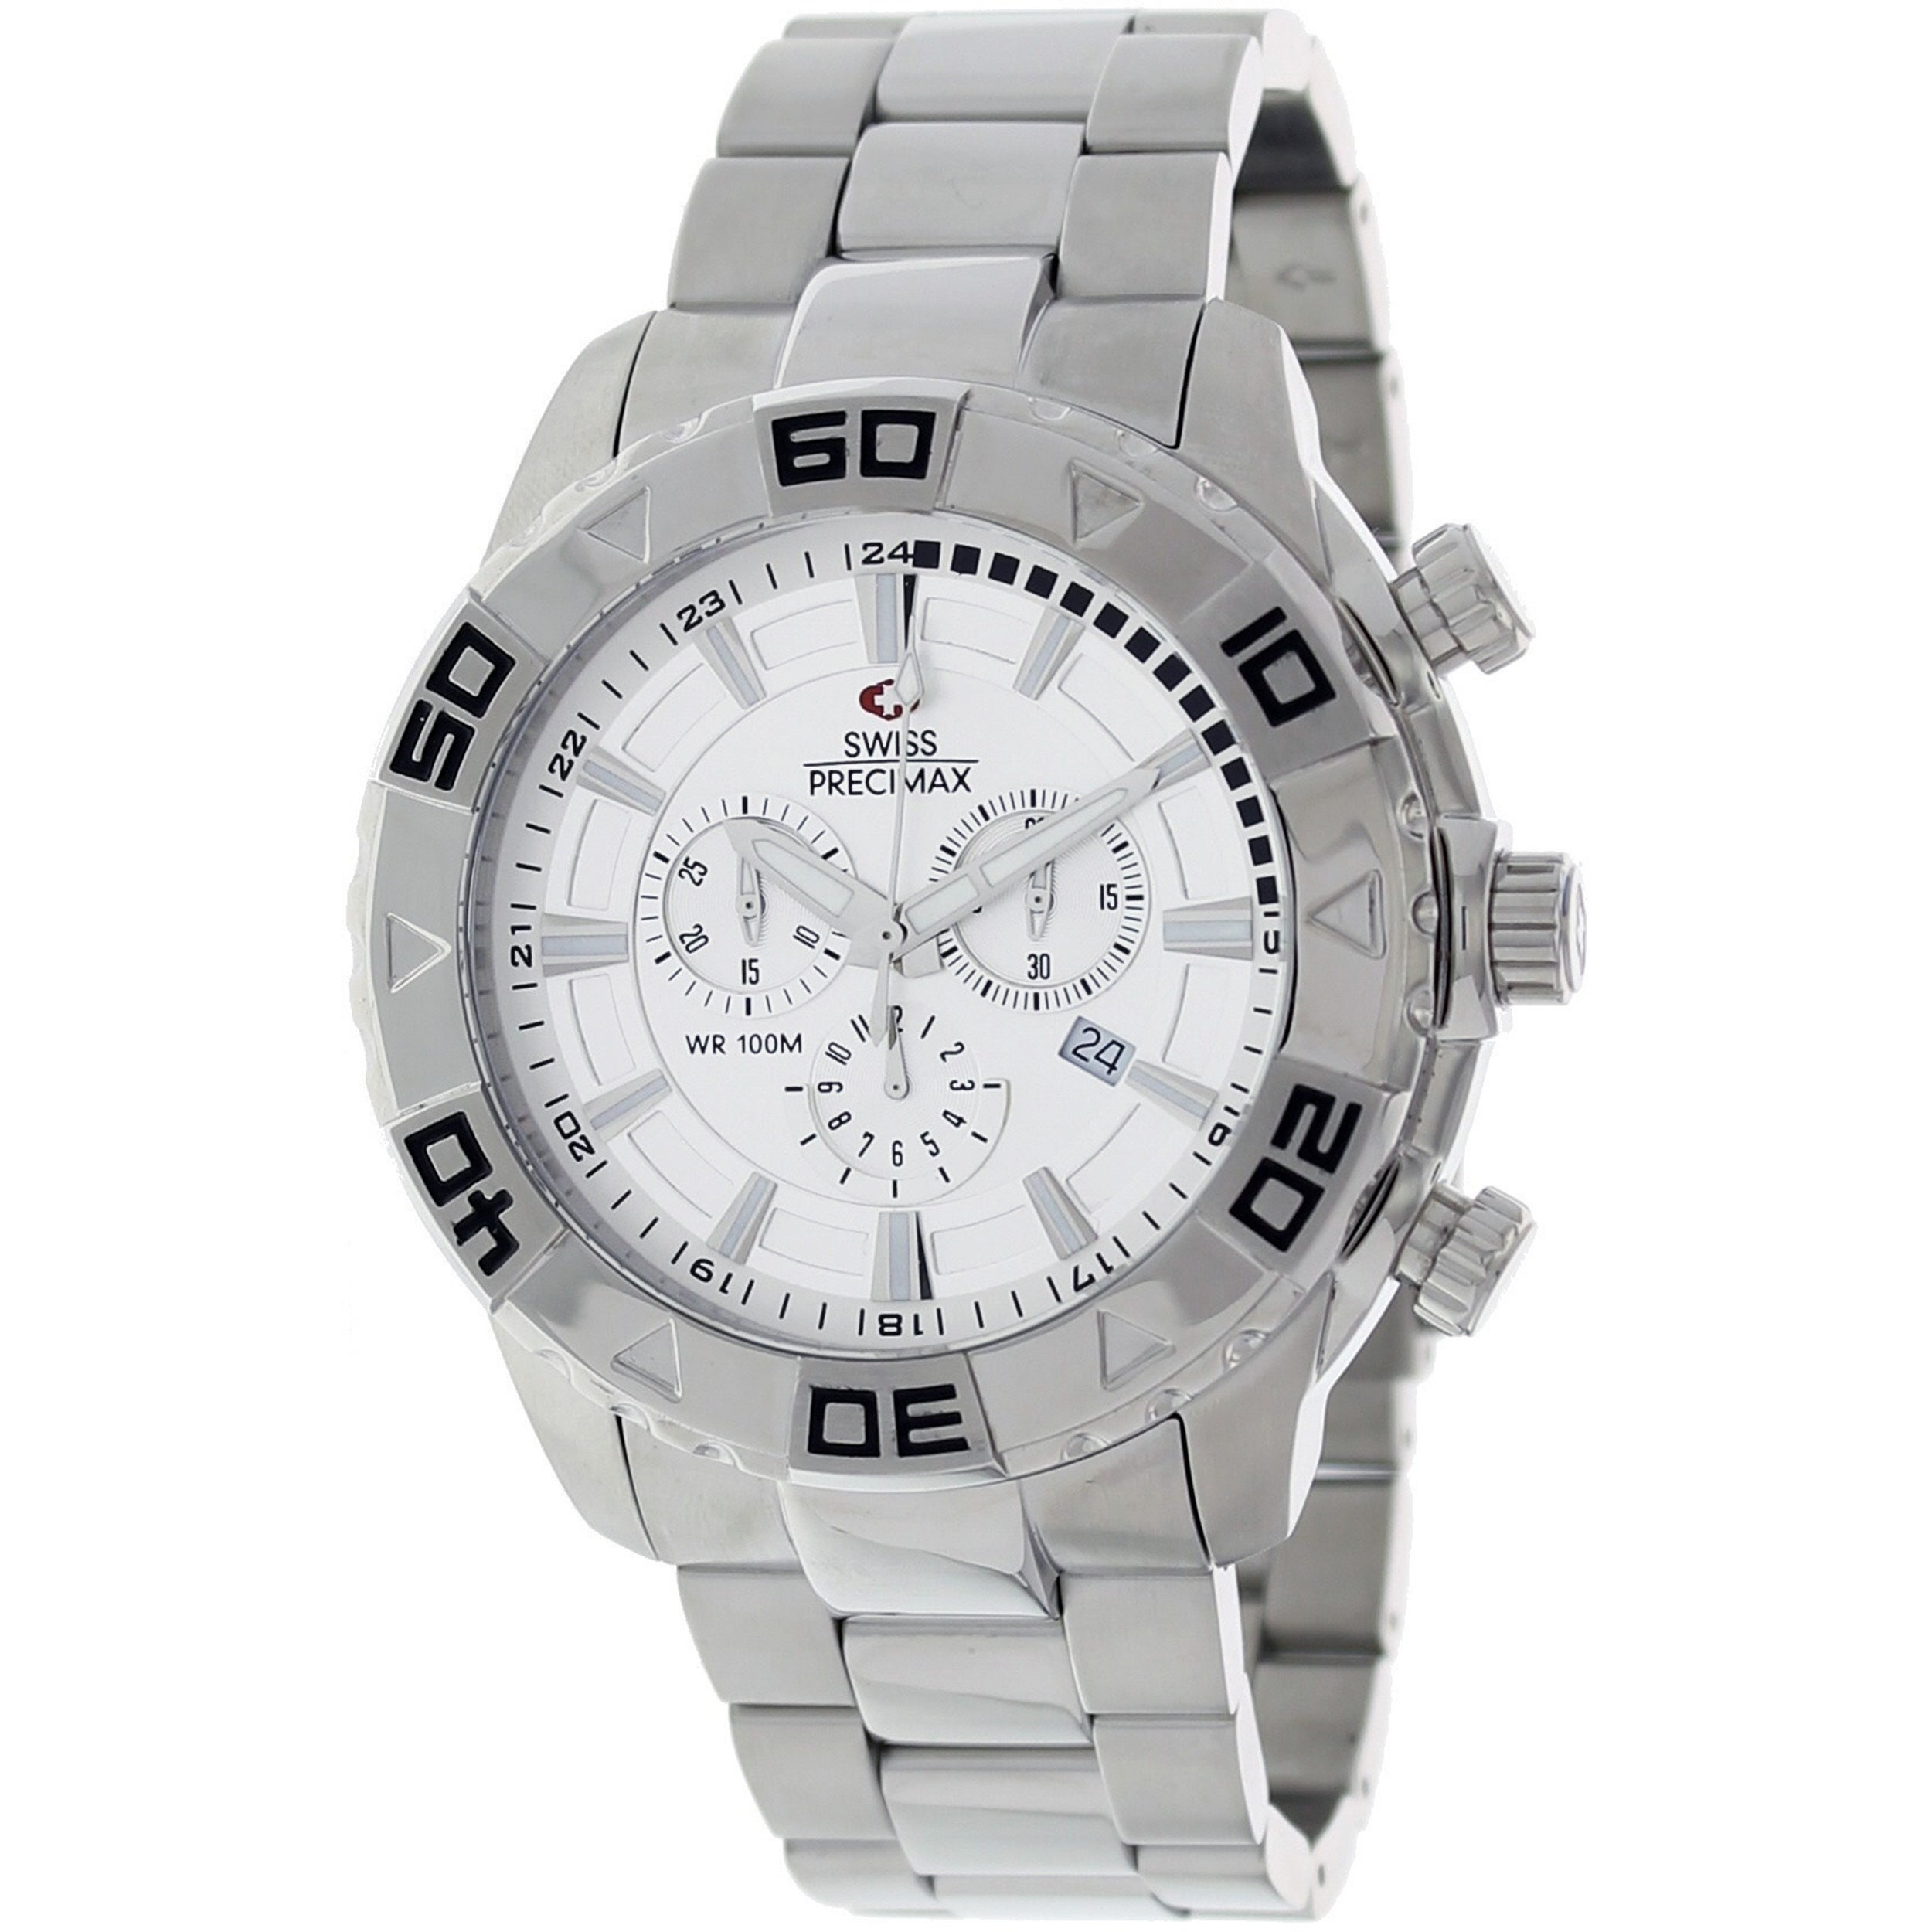 Swiss Precimax Men's Valor Elite Stainless Steel Watch - Thumbnail 0